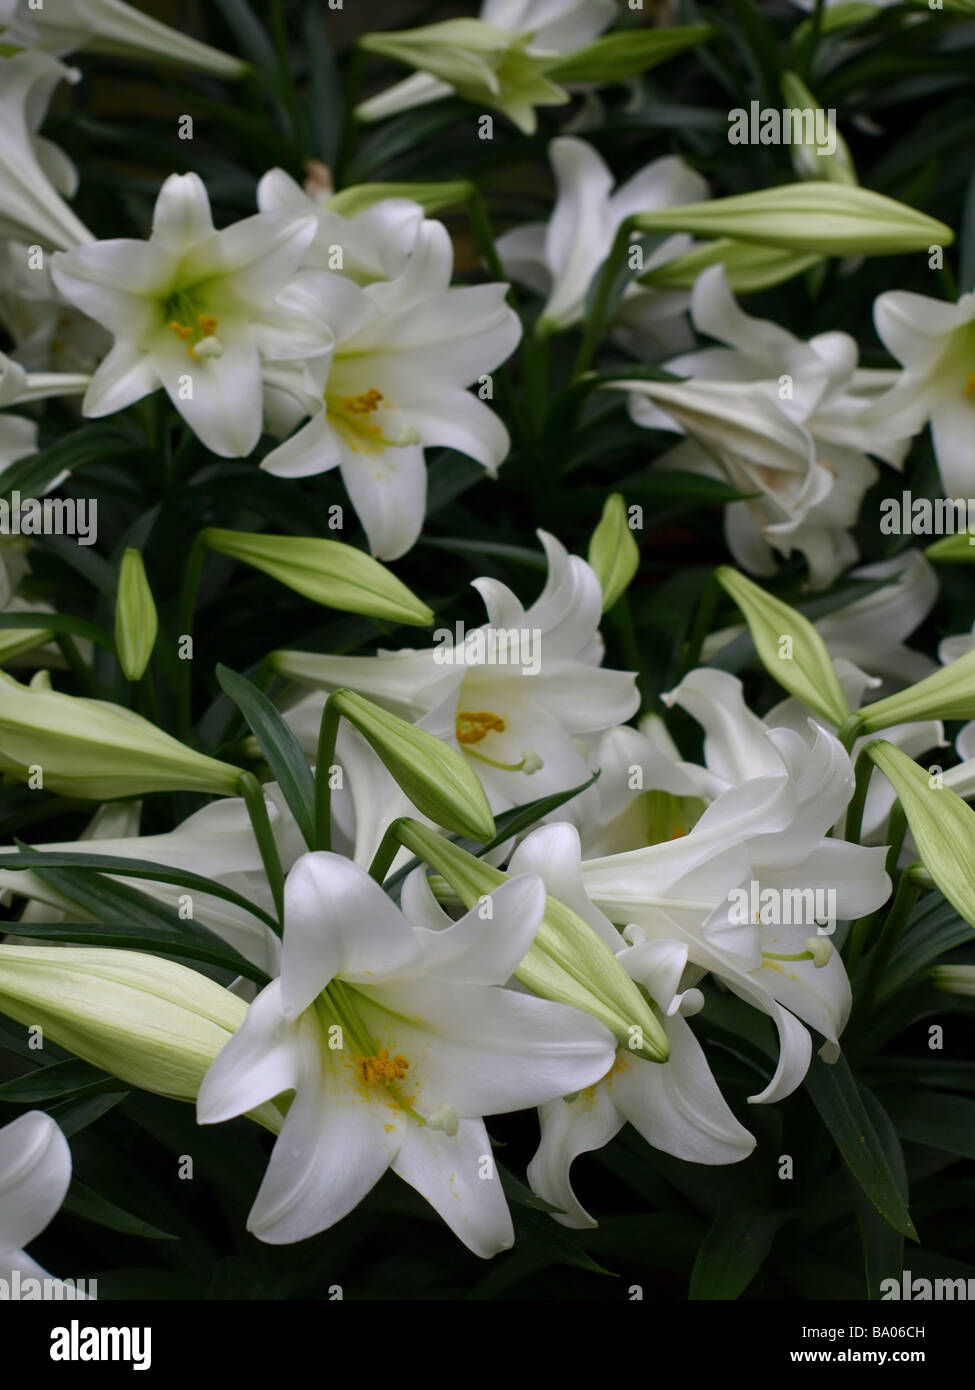 White Lily Stock Photos Amp White Lily Stock Images Alamy